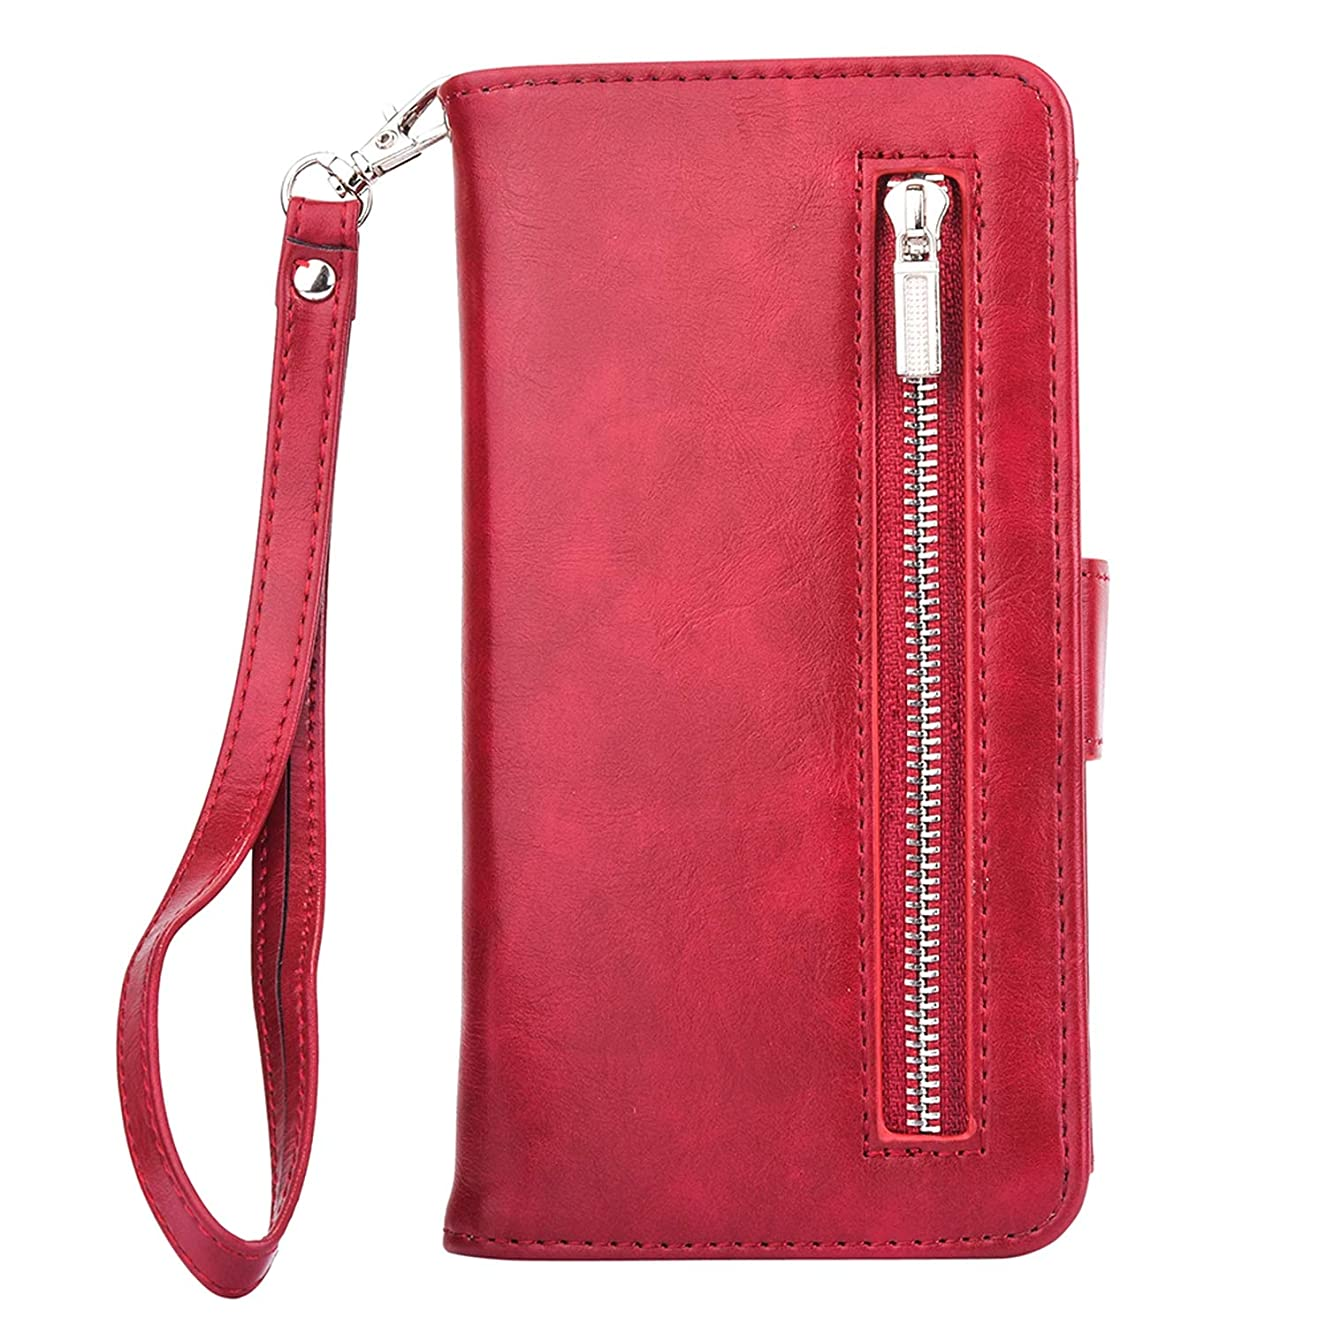 Zipper Wallet Leather Case for iPhone Xs Max X 8 7 7 Plus 6 6S Plus Flip Phone Case Luxury Cover for iPhone 5 5S Magnetic Case,Rose Red,for iPhone 5 5S SE hcvredawtf2948